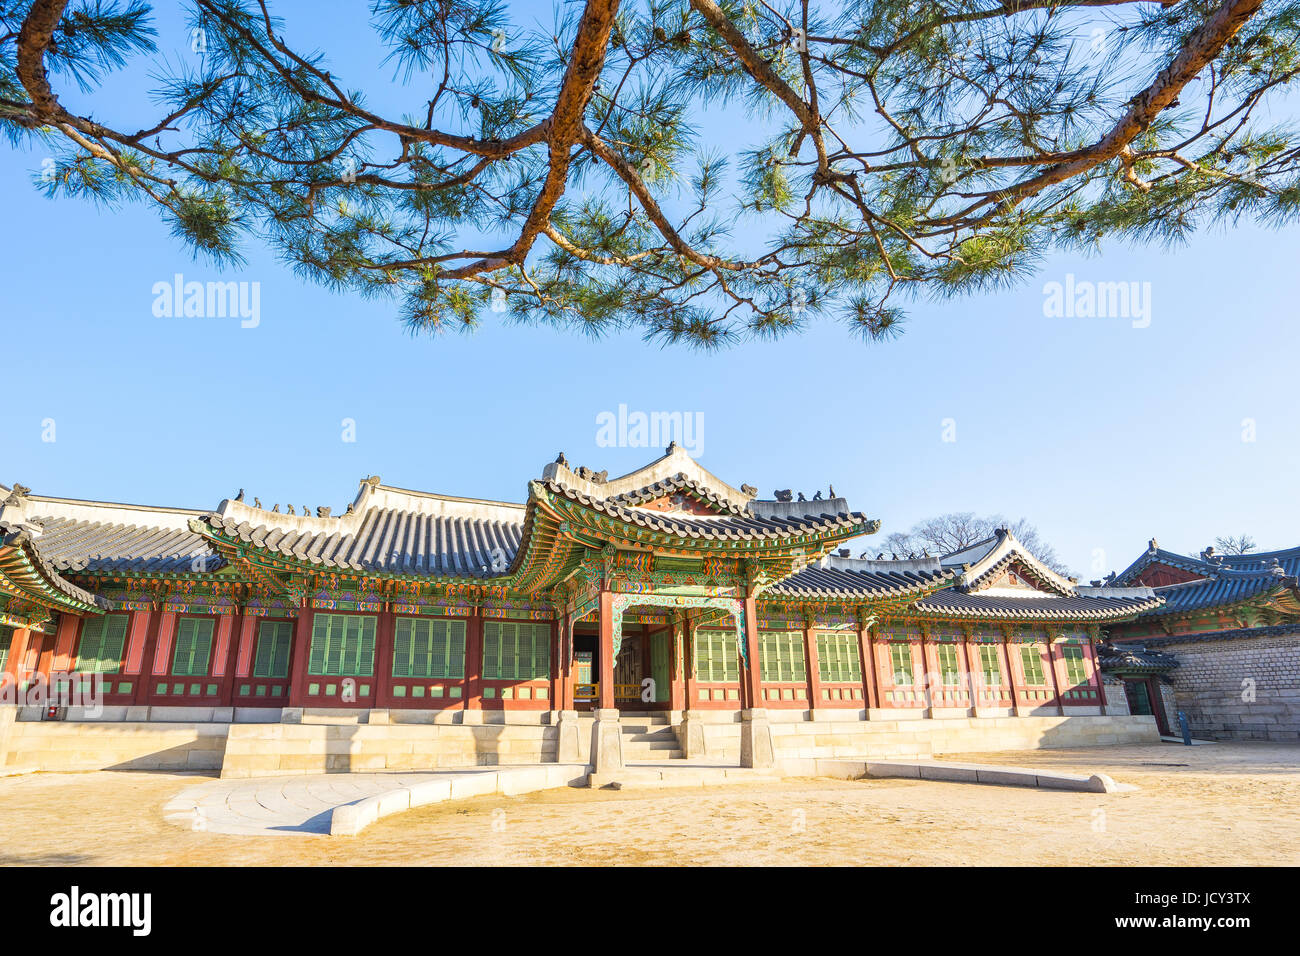 Changdeokgung Palace in Seoul, South Korea. - Stock Image